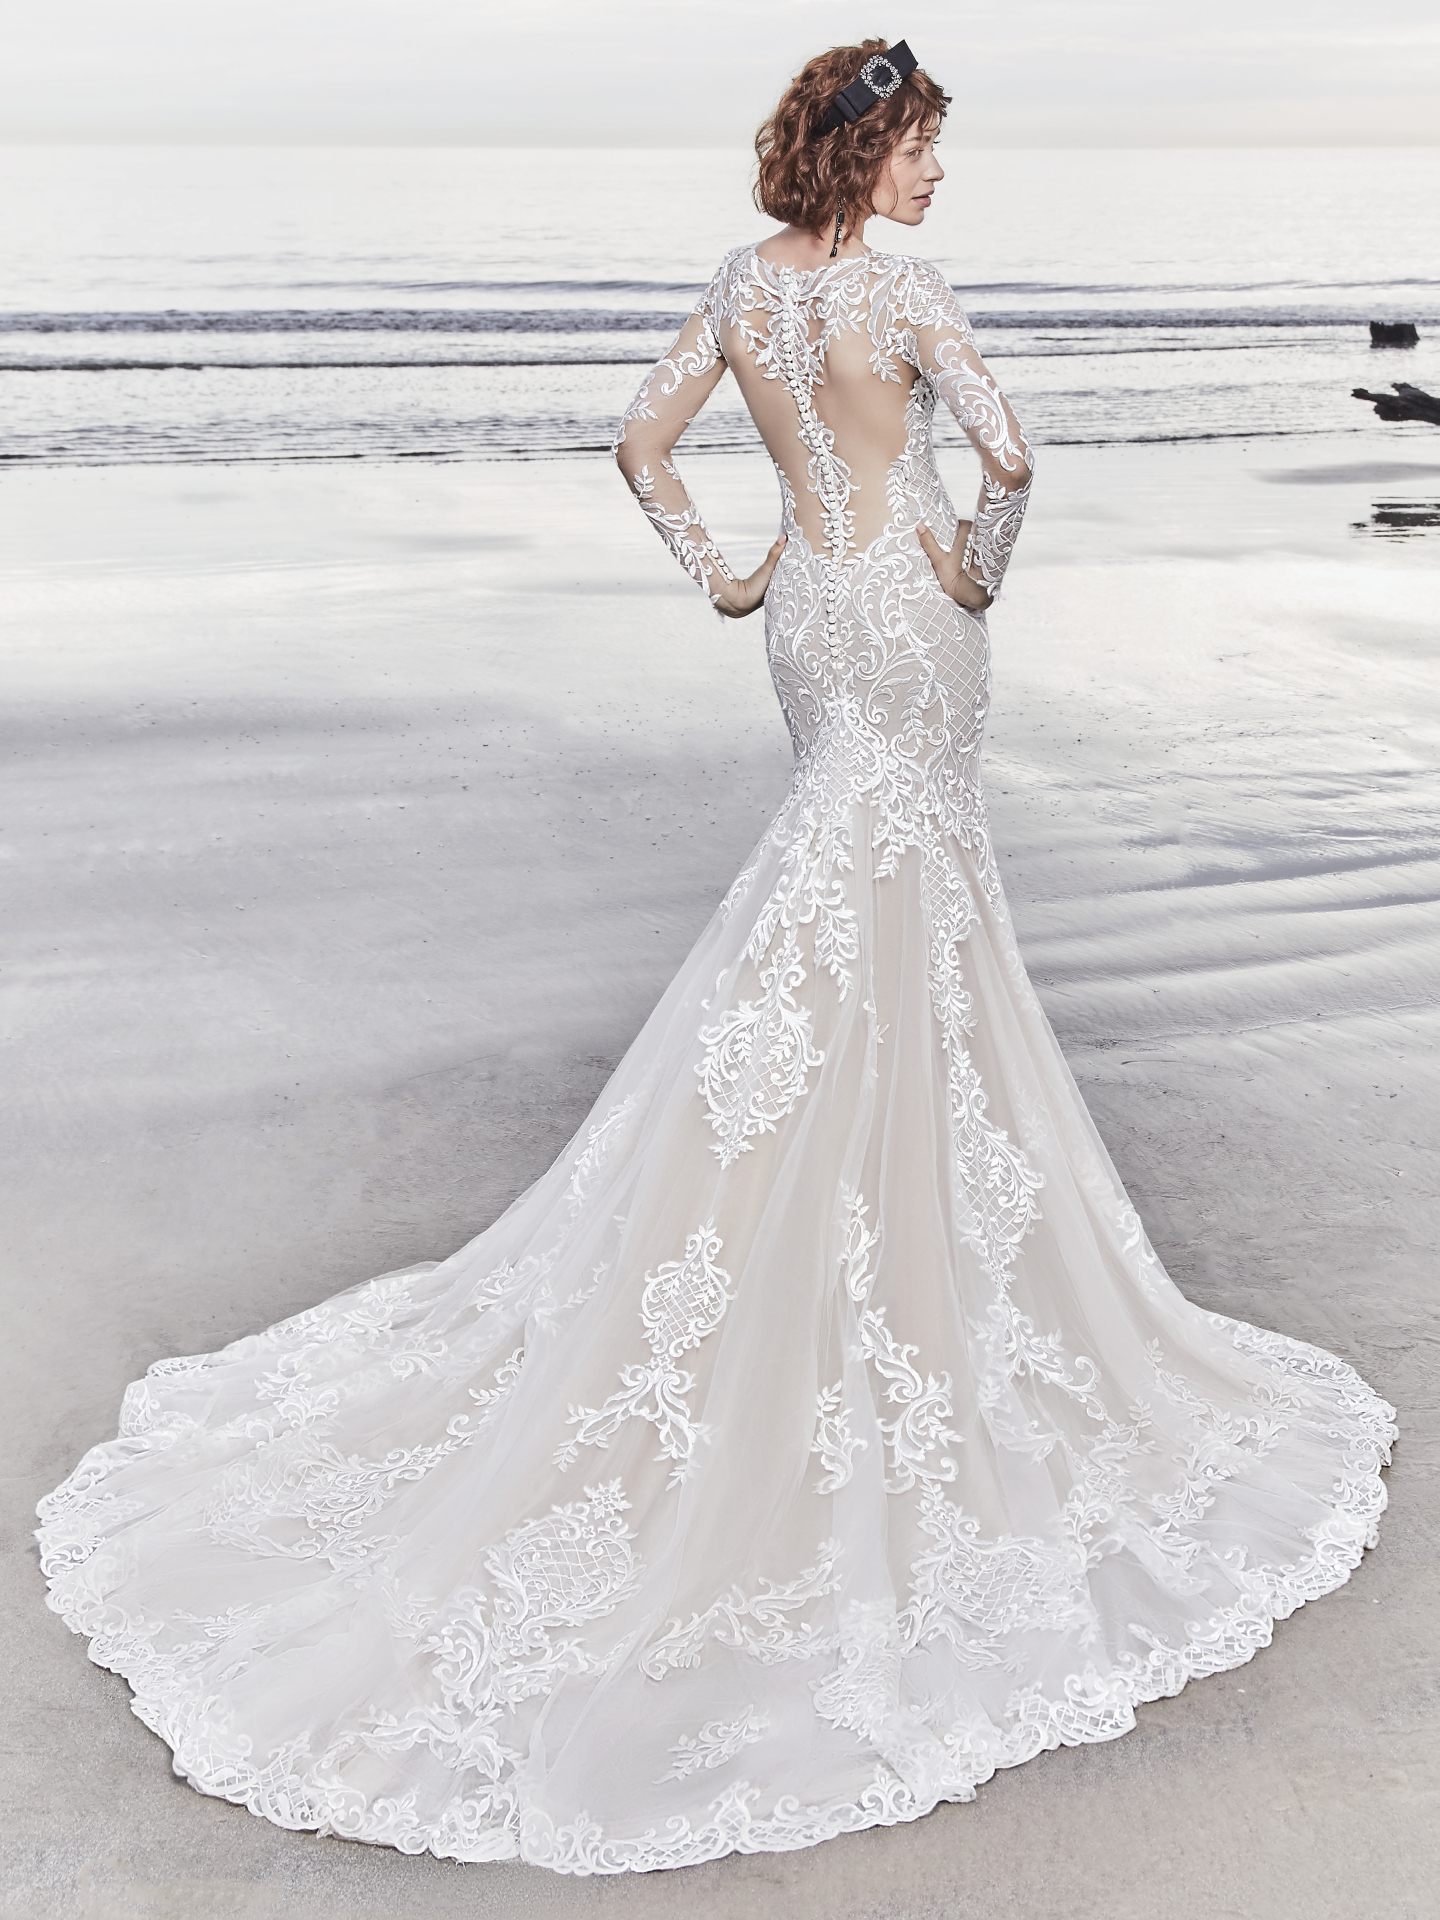 15 Gorgeous Statement-Back Gowns for the Stylish Bride - Dakota wedding dress by Sottero & Midgley